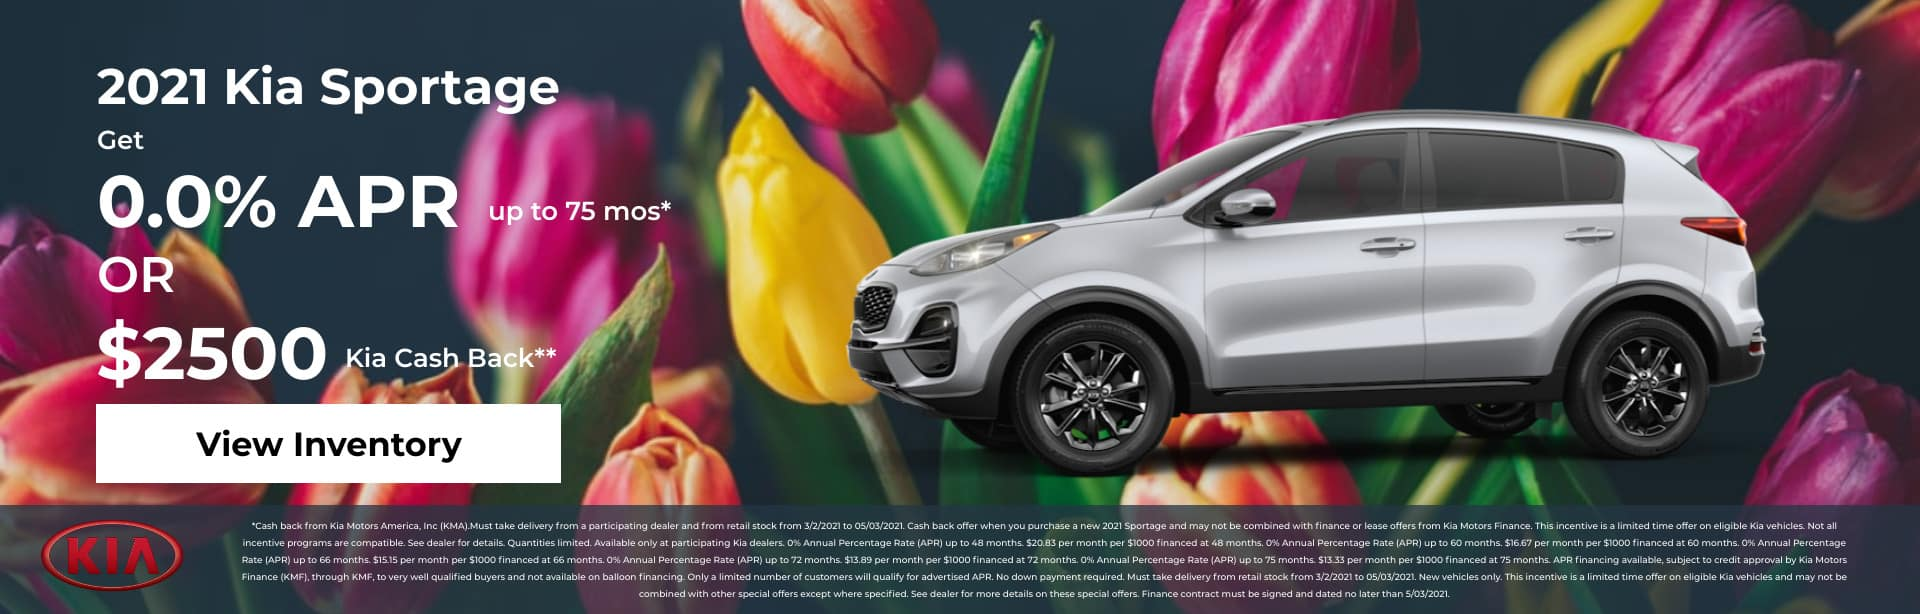 2021 Kia Sportage Get 0.0% APR up to 75 mos* OR $2,500 Kia Cash Back**